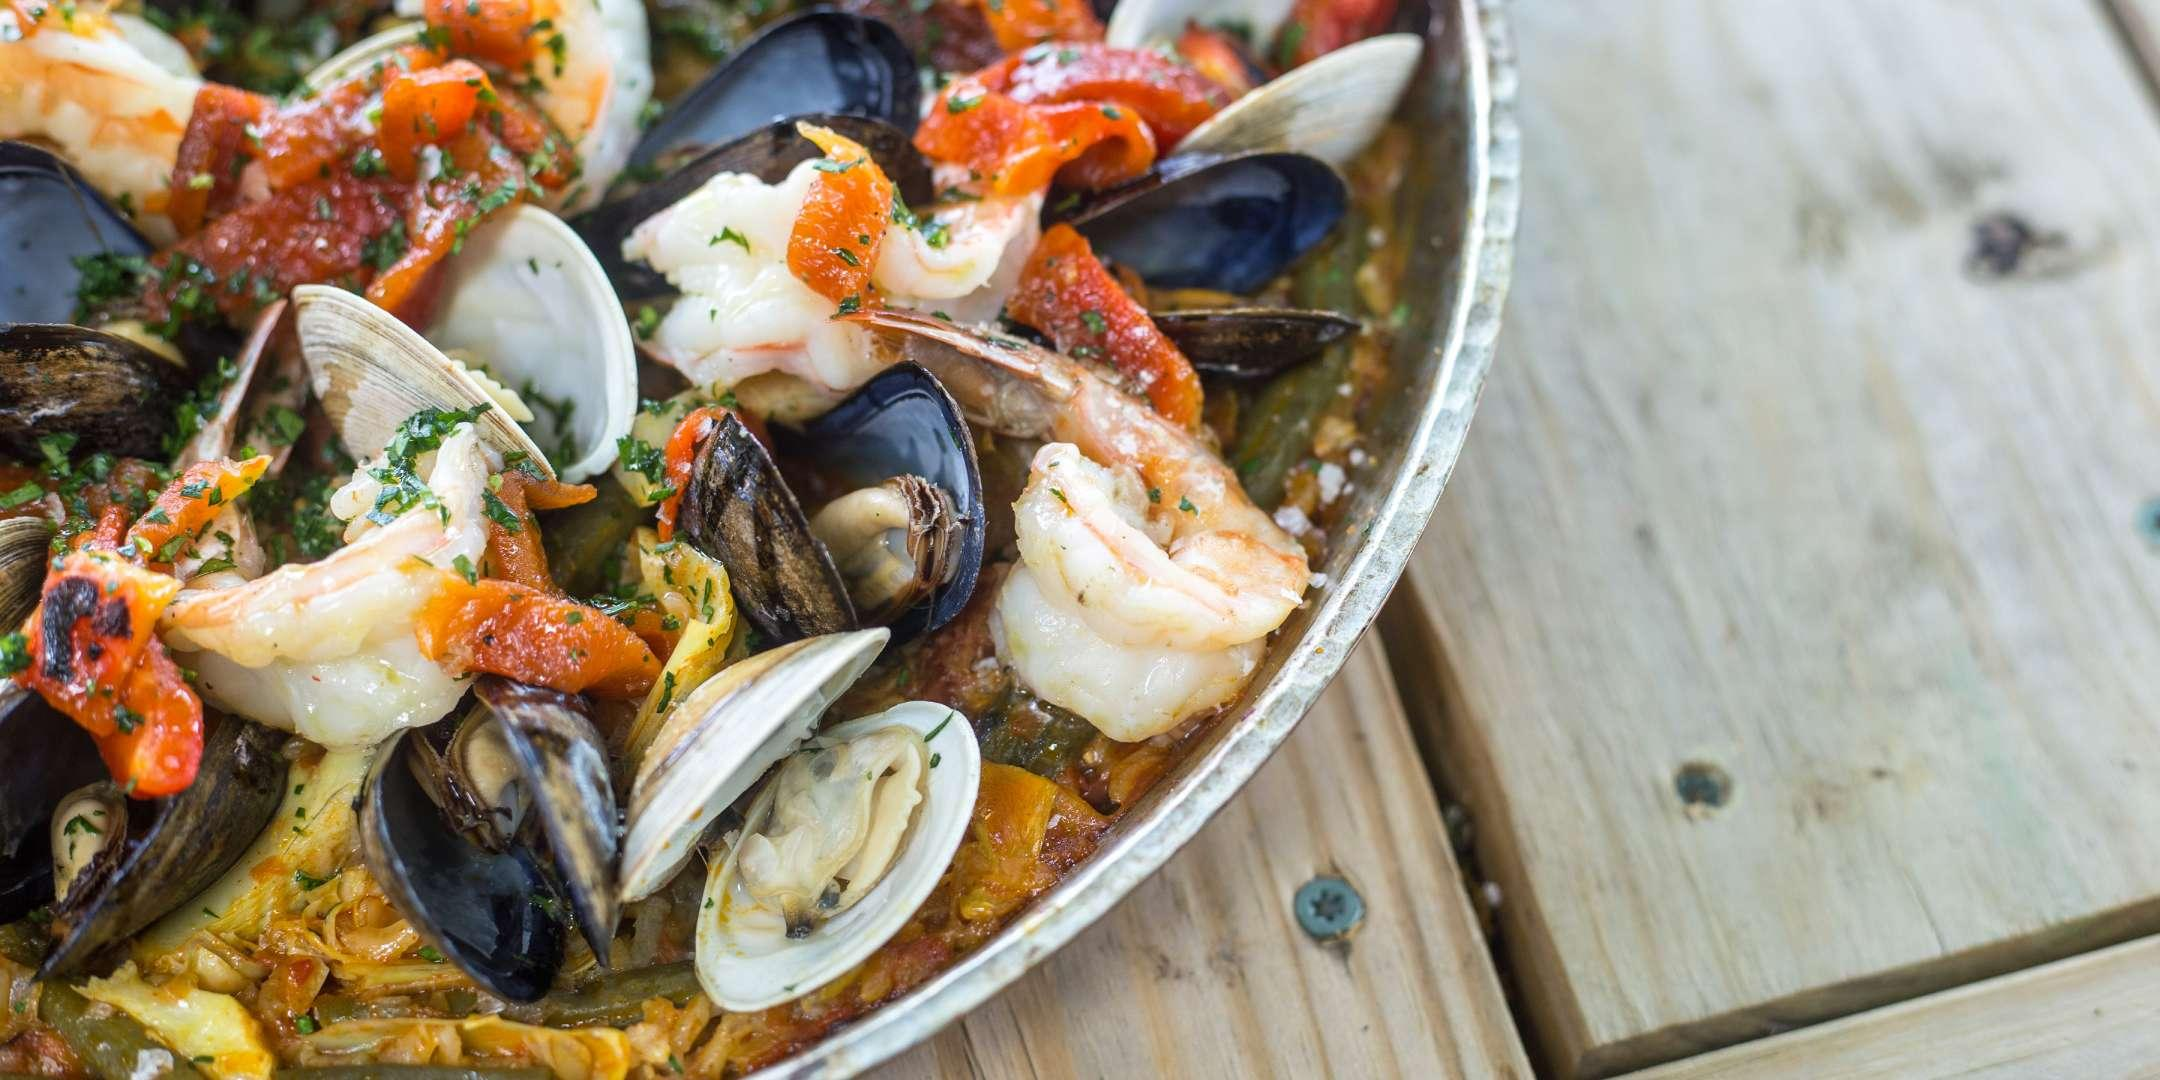 The Ultimate Paella Experience - Team Building by Cozymeal™